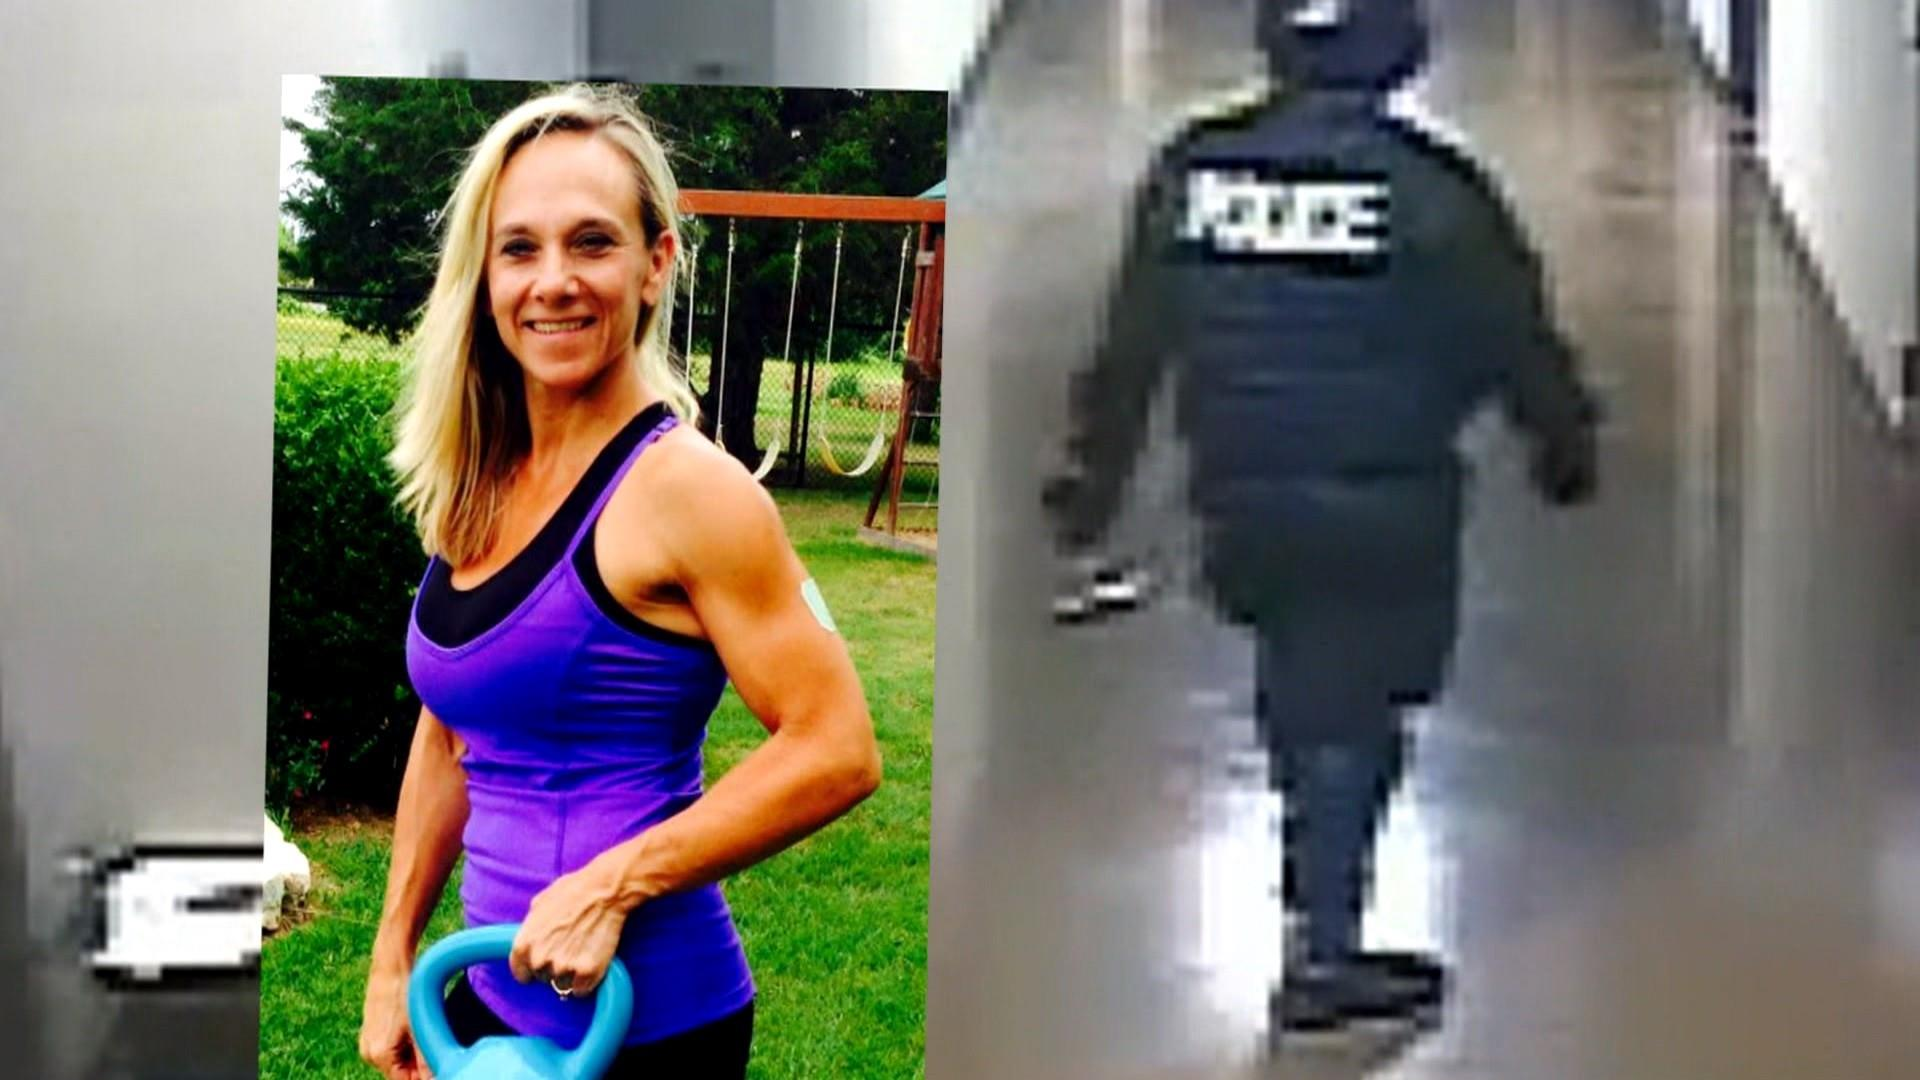 Family of murdered fitness instructor Missy Bevers speaks out 2 years later